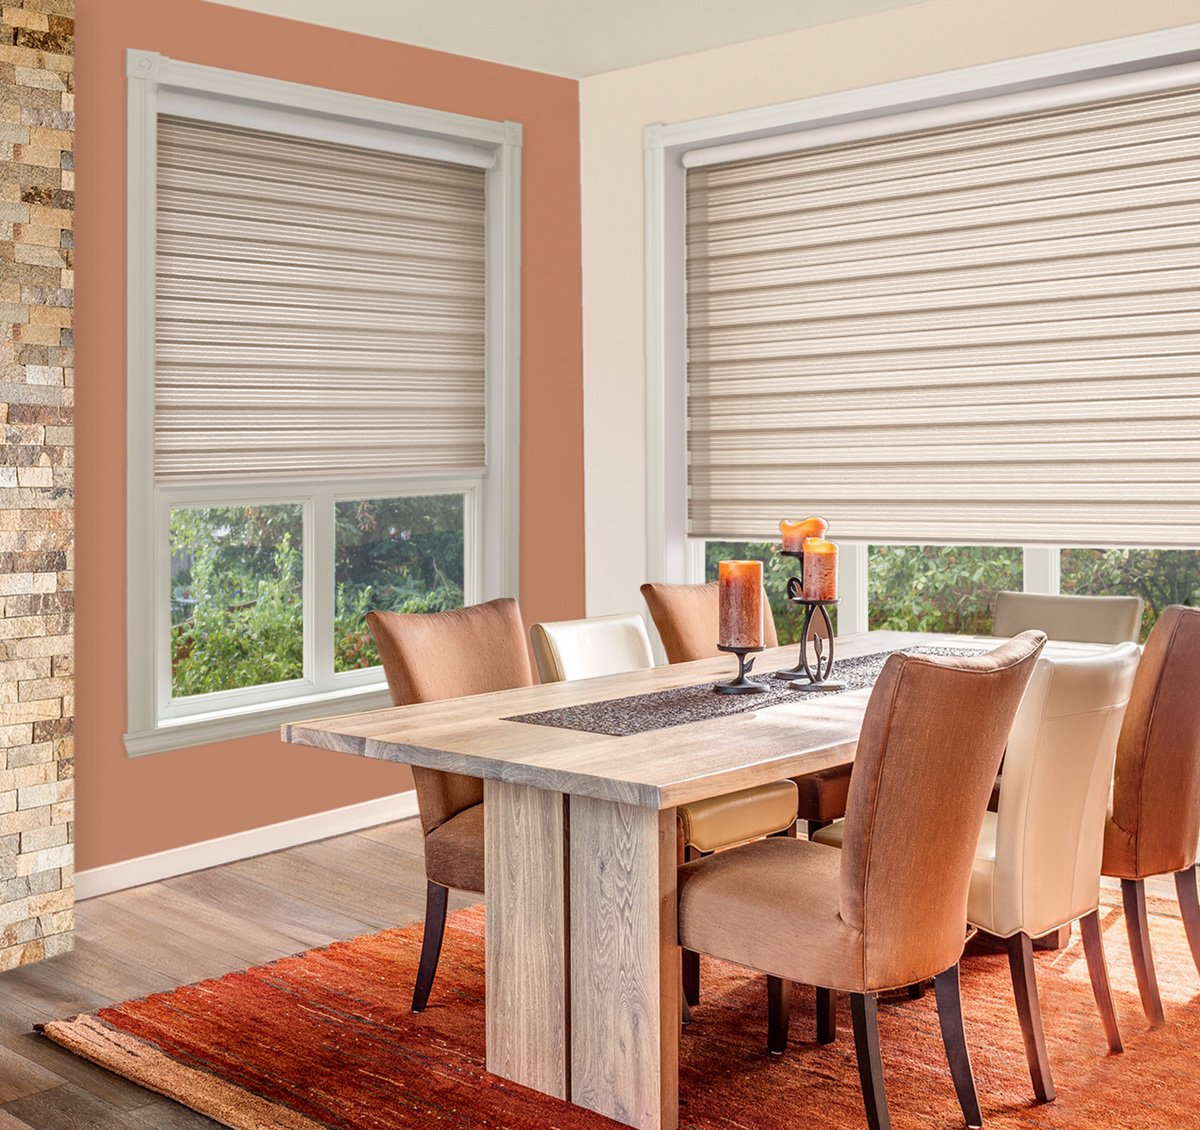 VALE Lunica Multishade/Duorol Blind